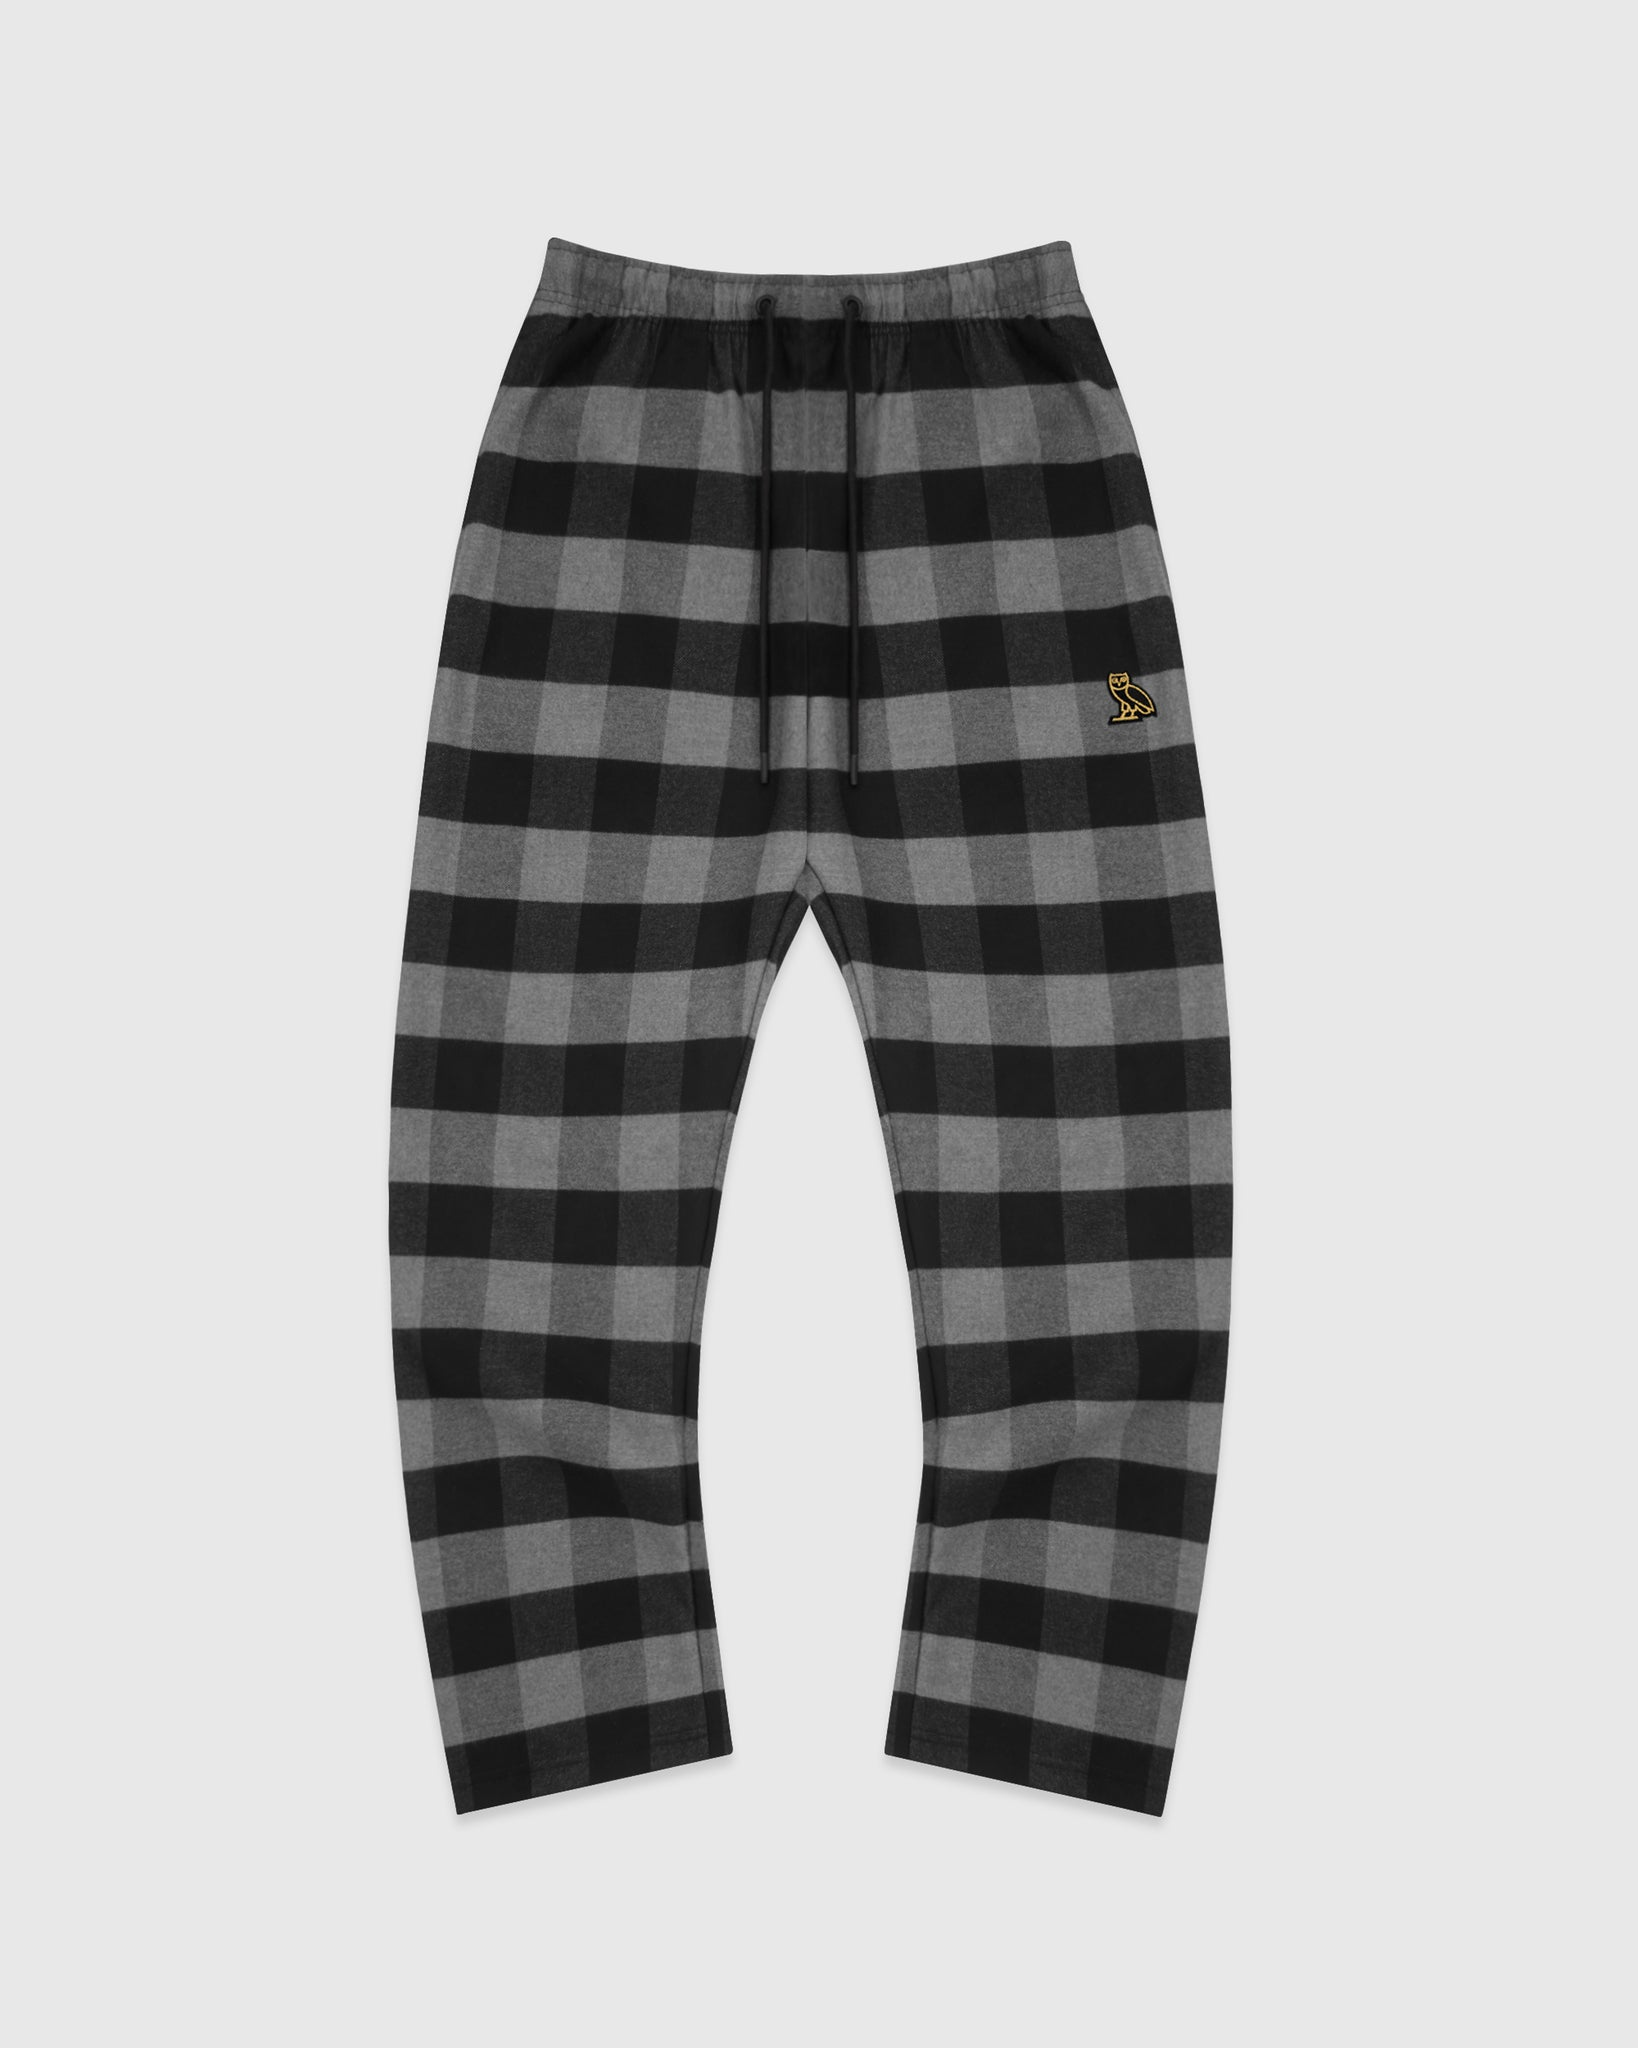 OVO FLANNEL LOUNGE PANT - BLACK PLAID